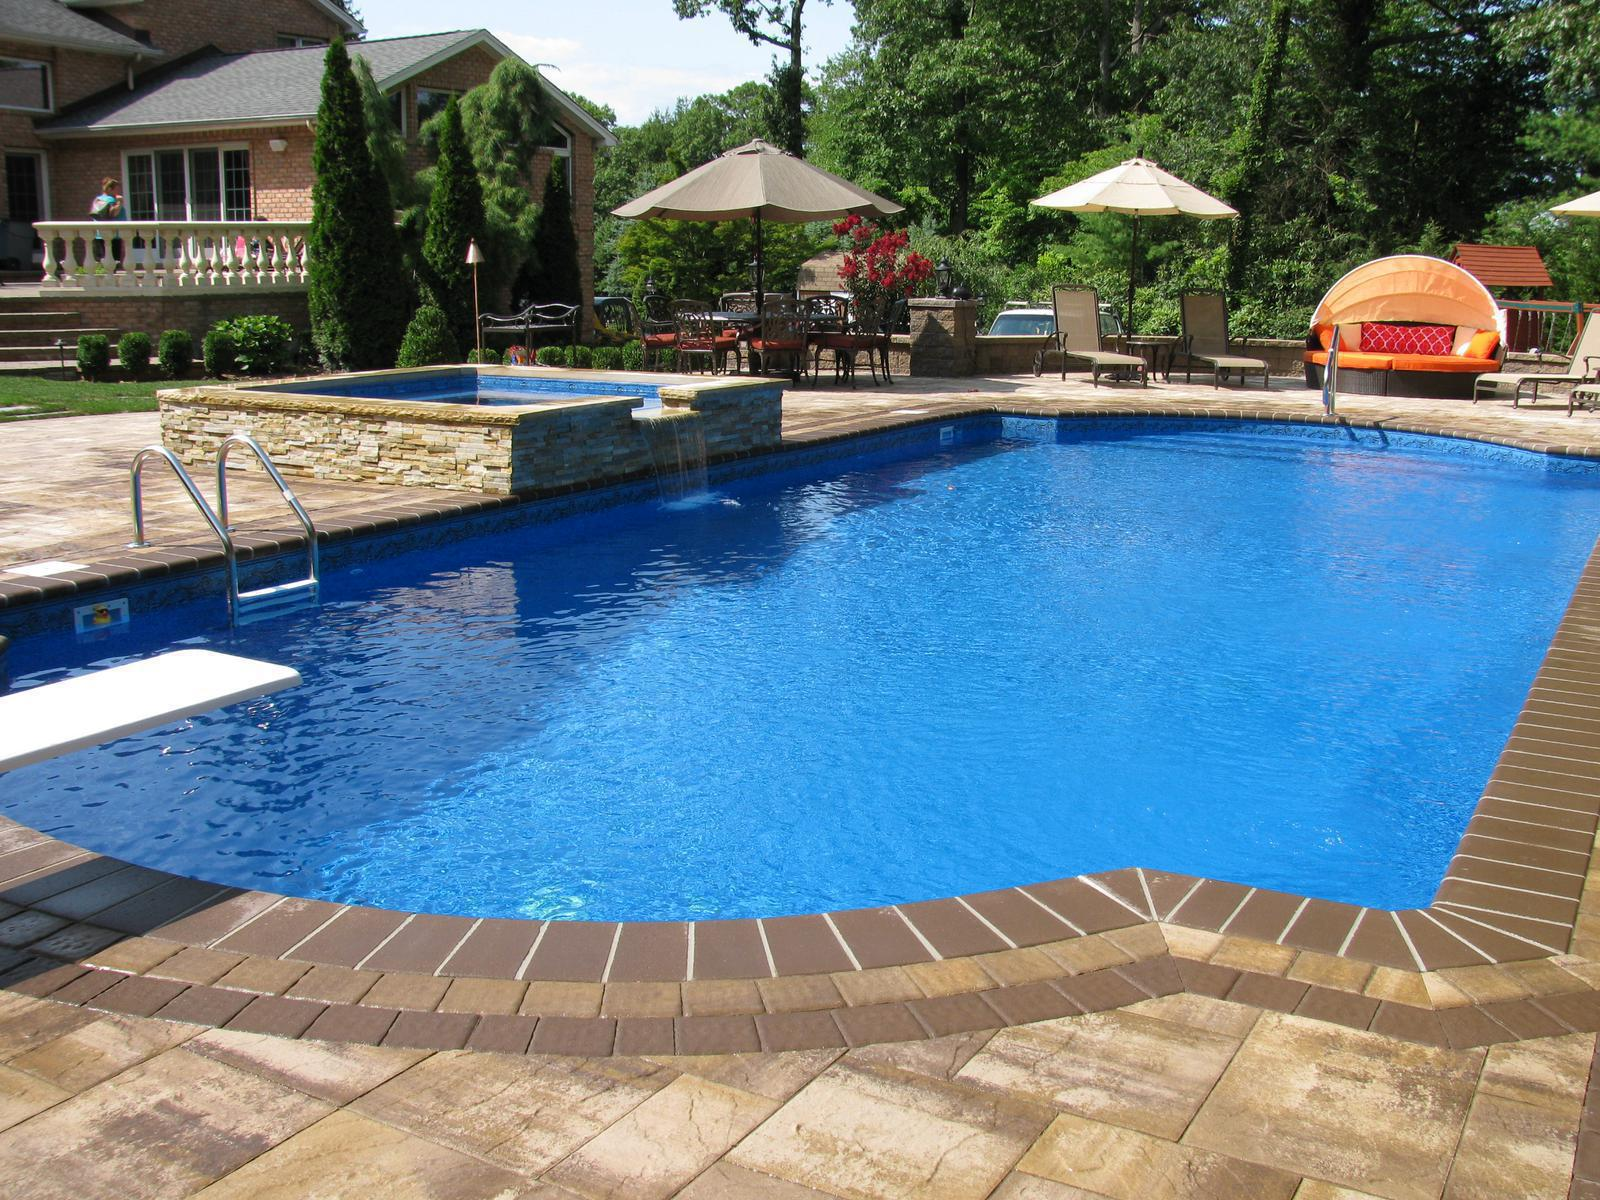 Pools with Spas True Blue Swimming Pools Dix Hills, NY (631) 757-7665